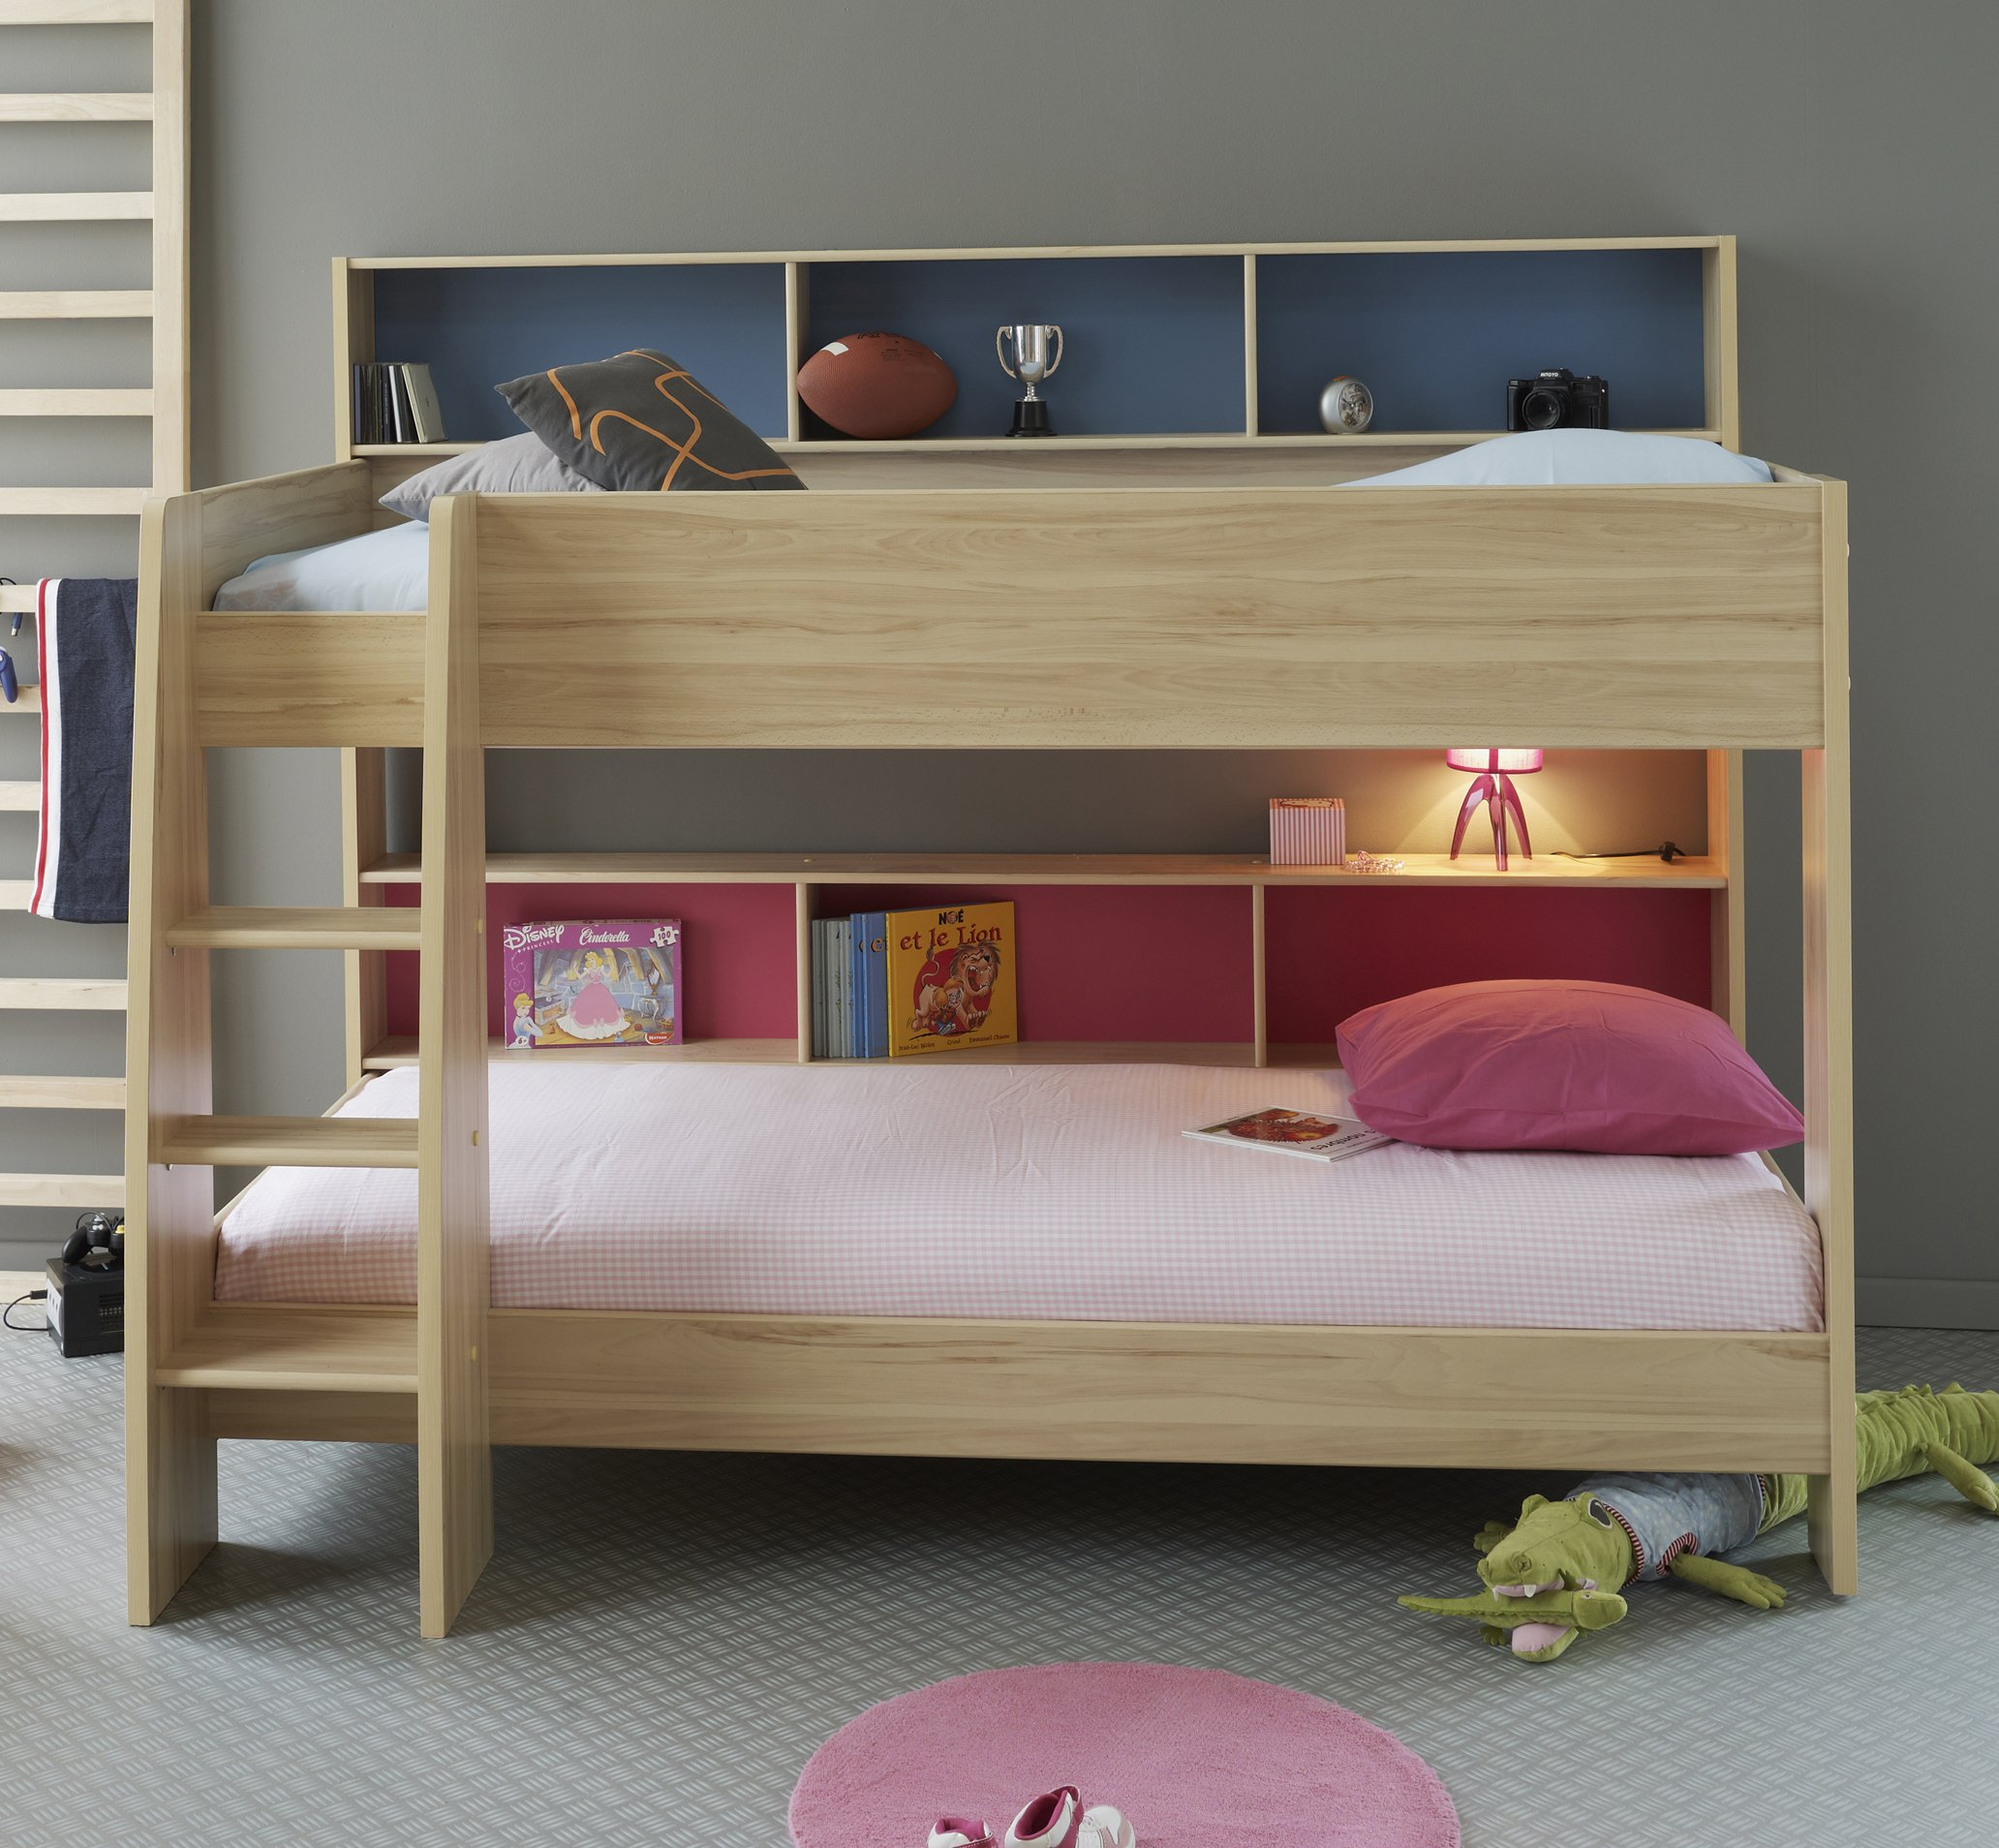 Incredible Style and Modern Bunk Beds for Kids Bedroom: Modern Bunk Beds | T Shaped Bunk Beds | Modern Bunk Beds